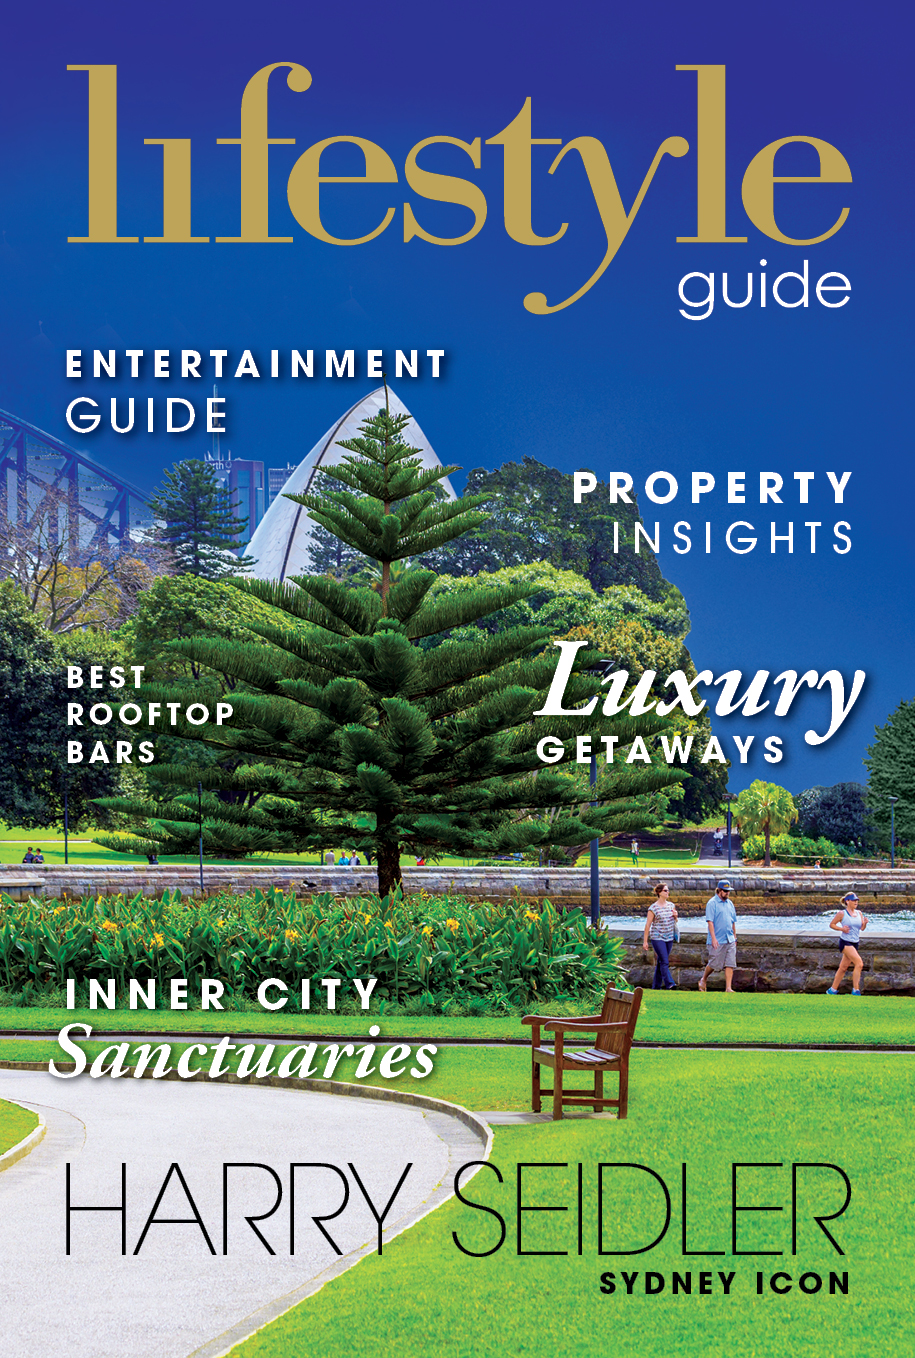 The Lifestyle Guide 2016, Harry Seidler, Sydney Icon